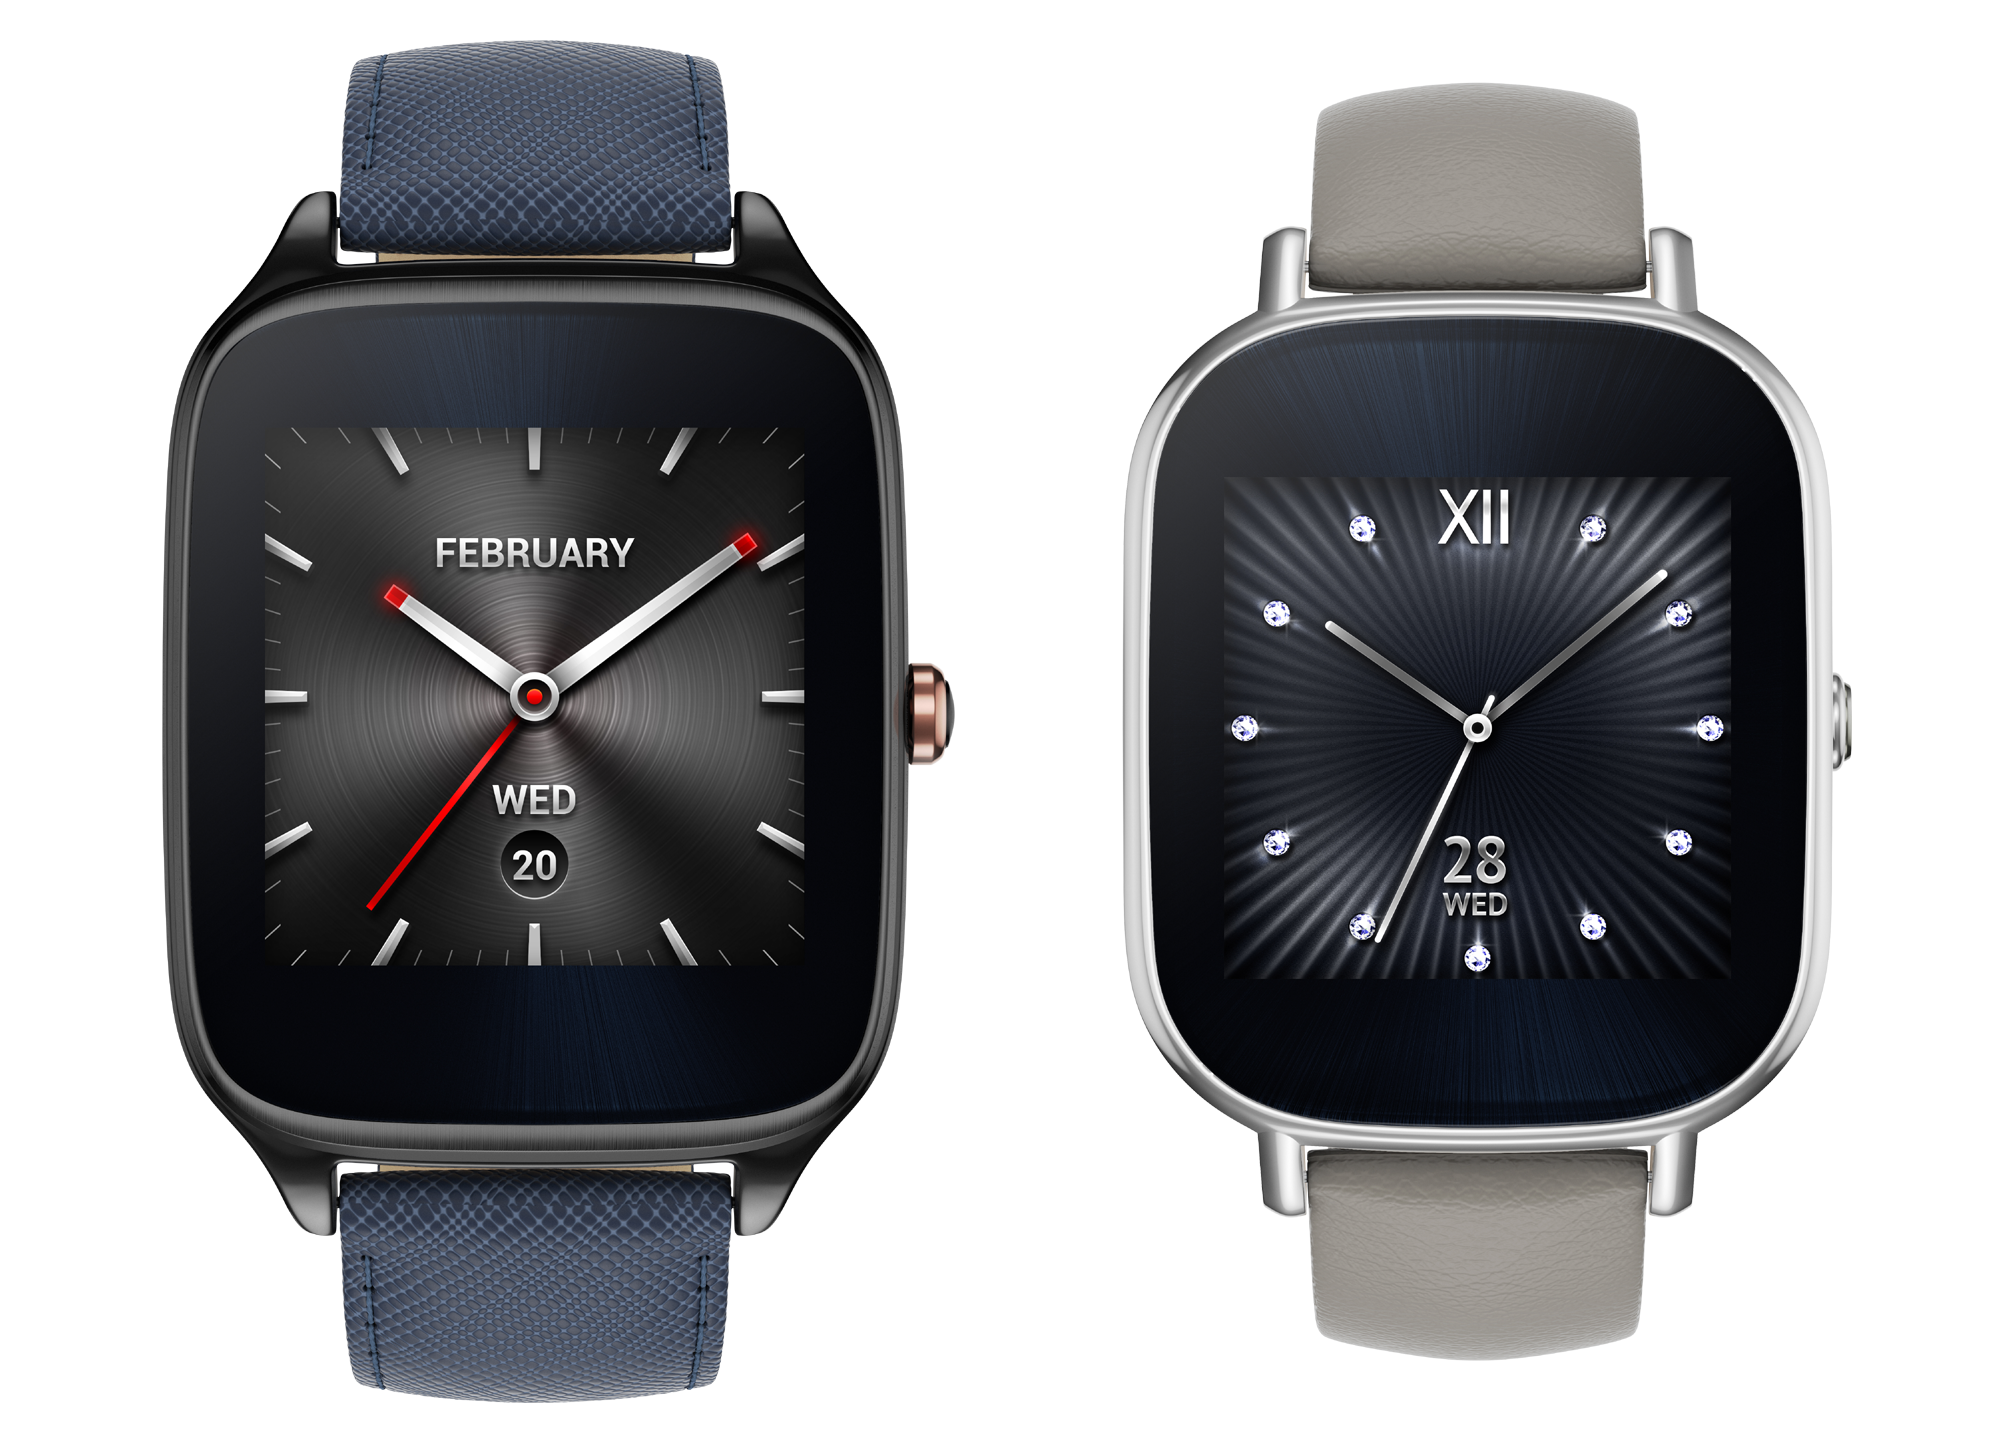 ASUS posts details of the latest ZenWatch 2 update